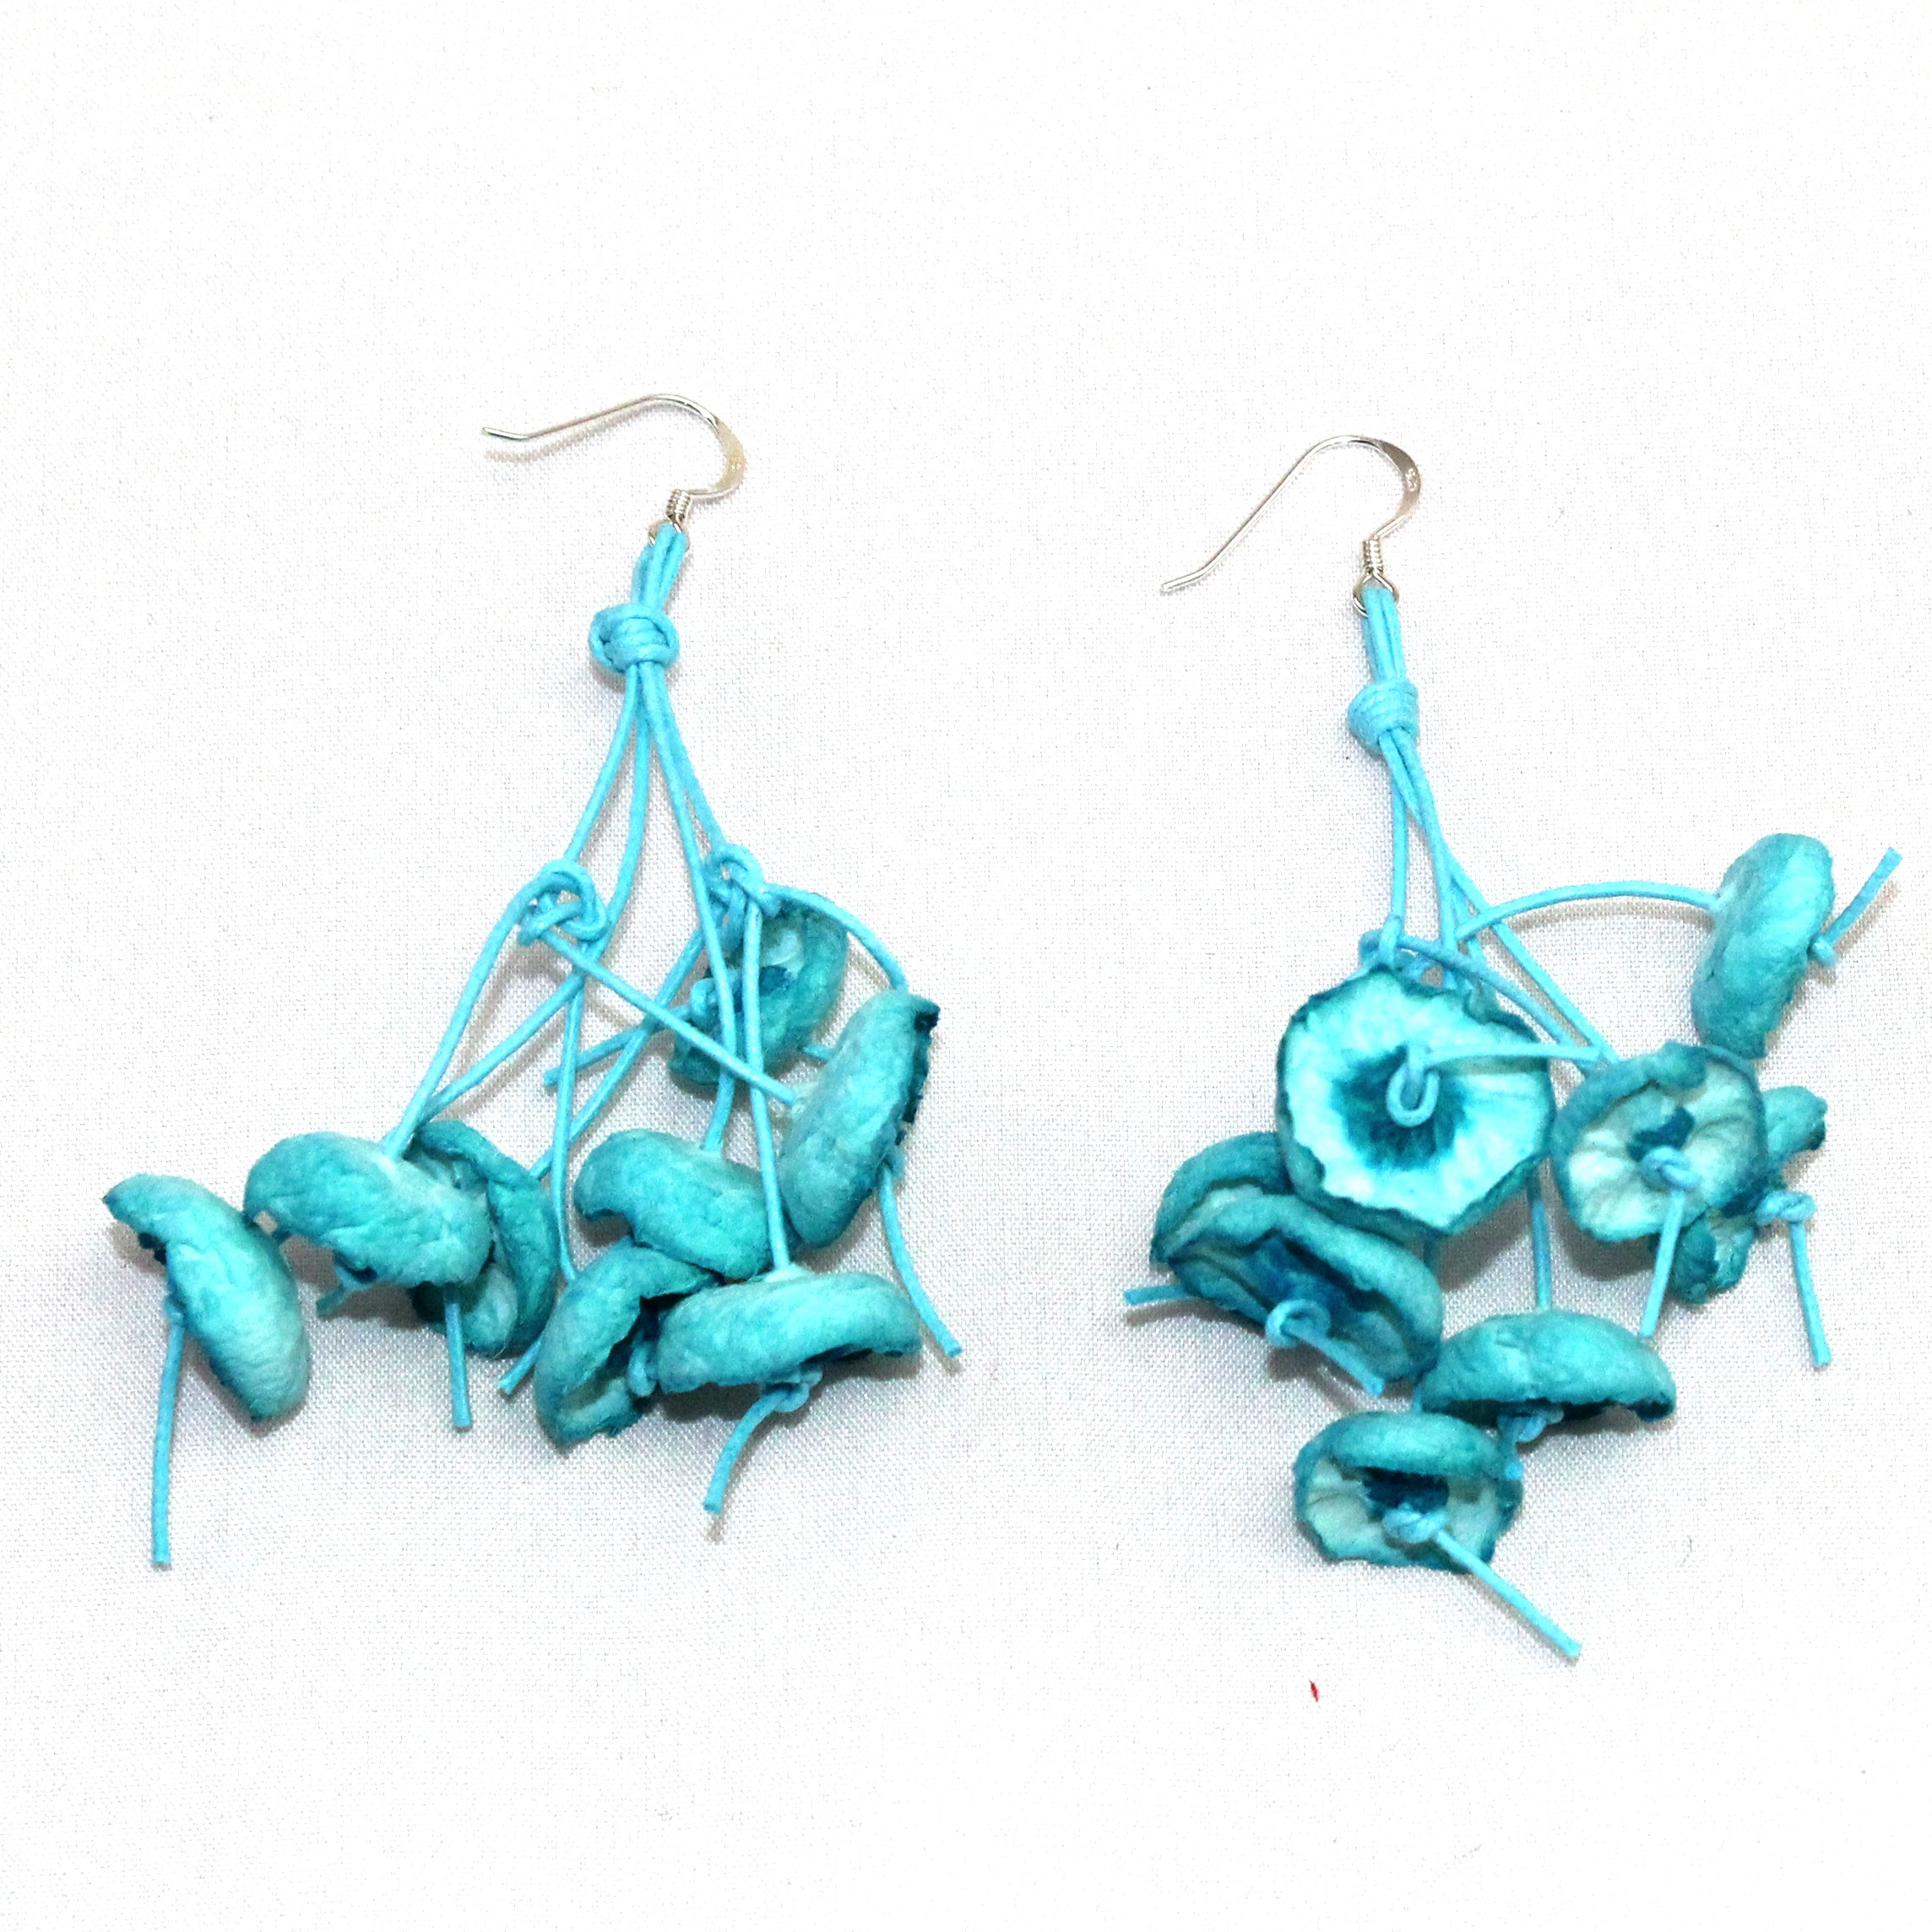 Begona Rentero Earrings, Elena En La Playa, Turquoise